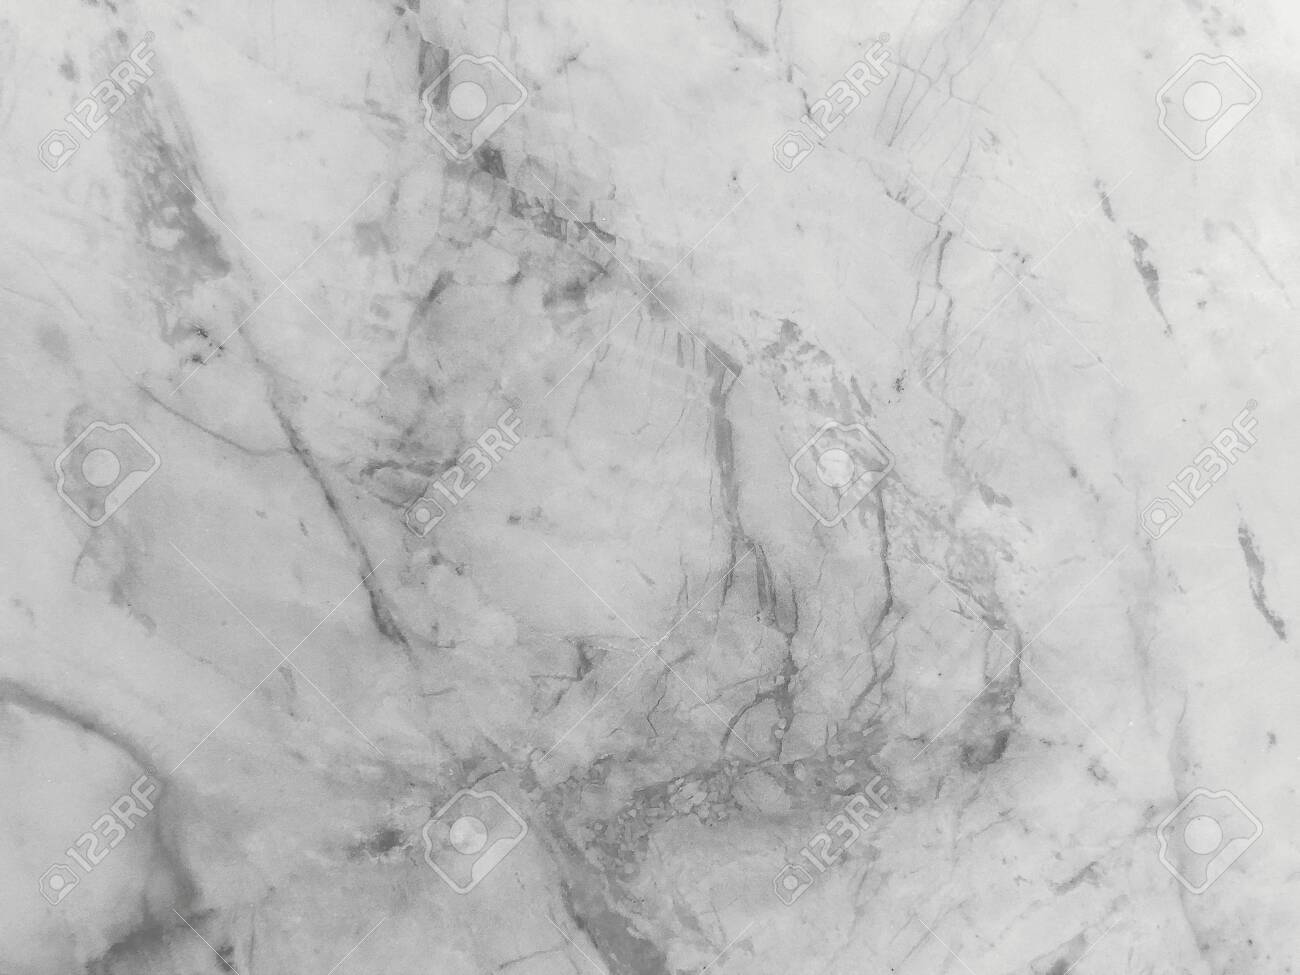 White marble texture with natural pattern for background or design art work. High Resolution. - 146339425